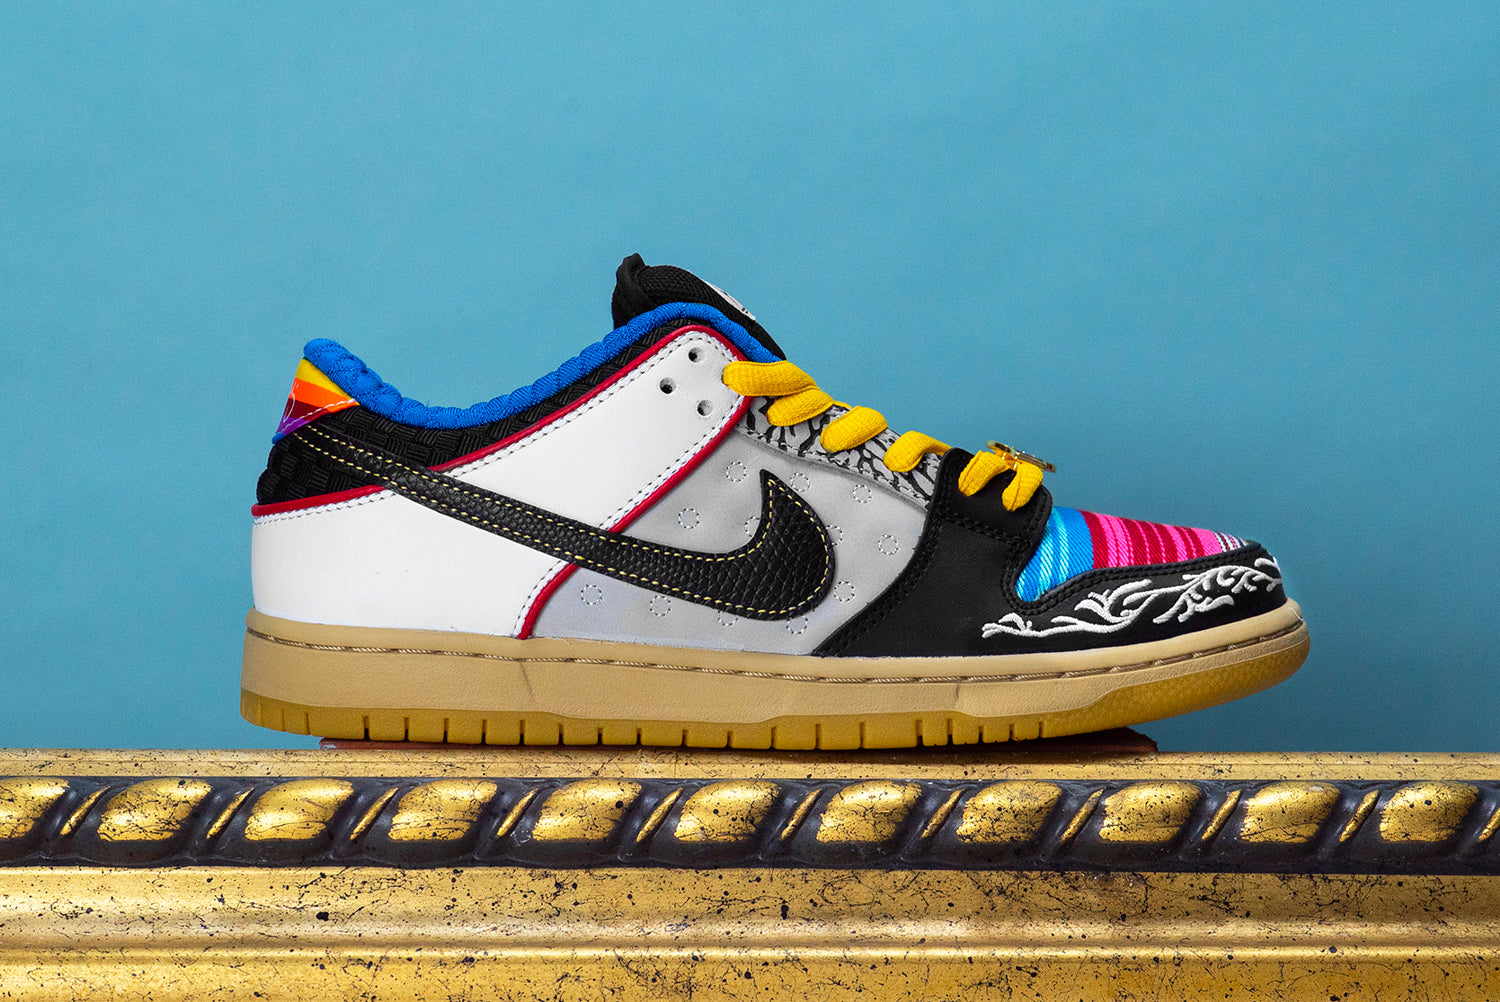 Nike_SB_Dunk_Low_What_The_Prod_3